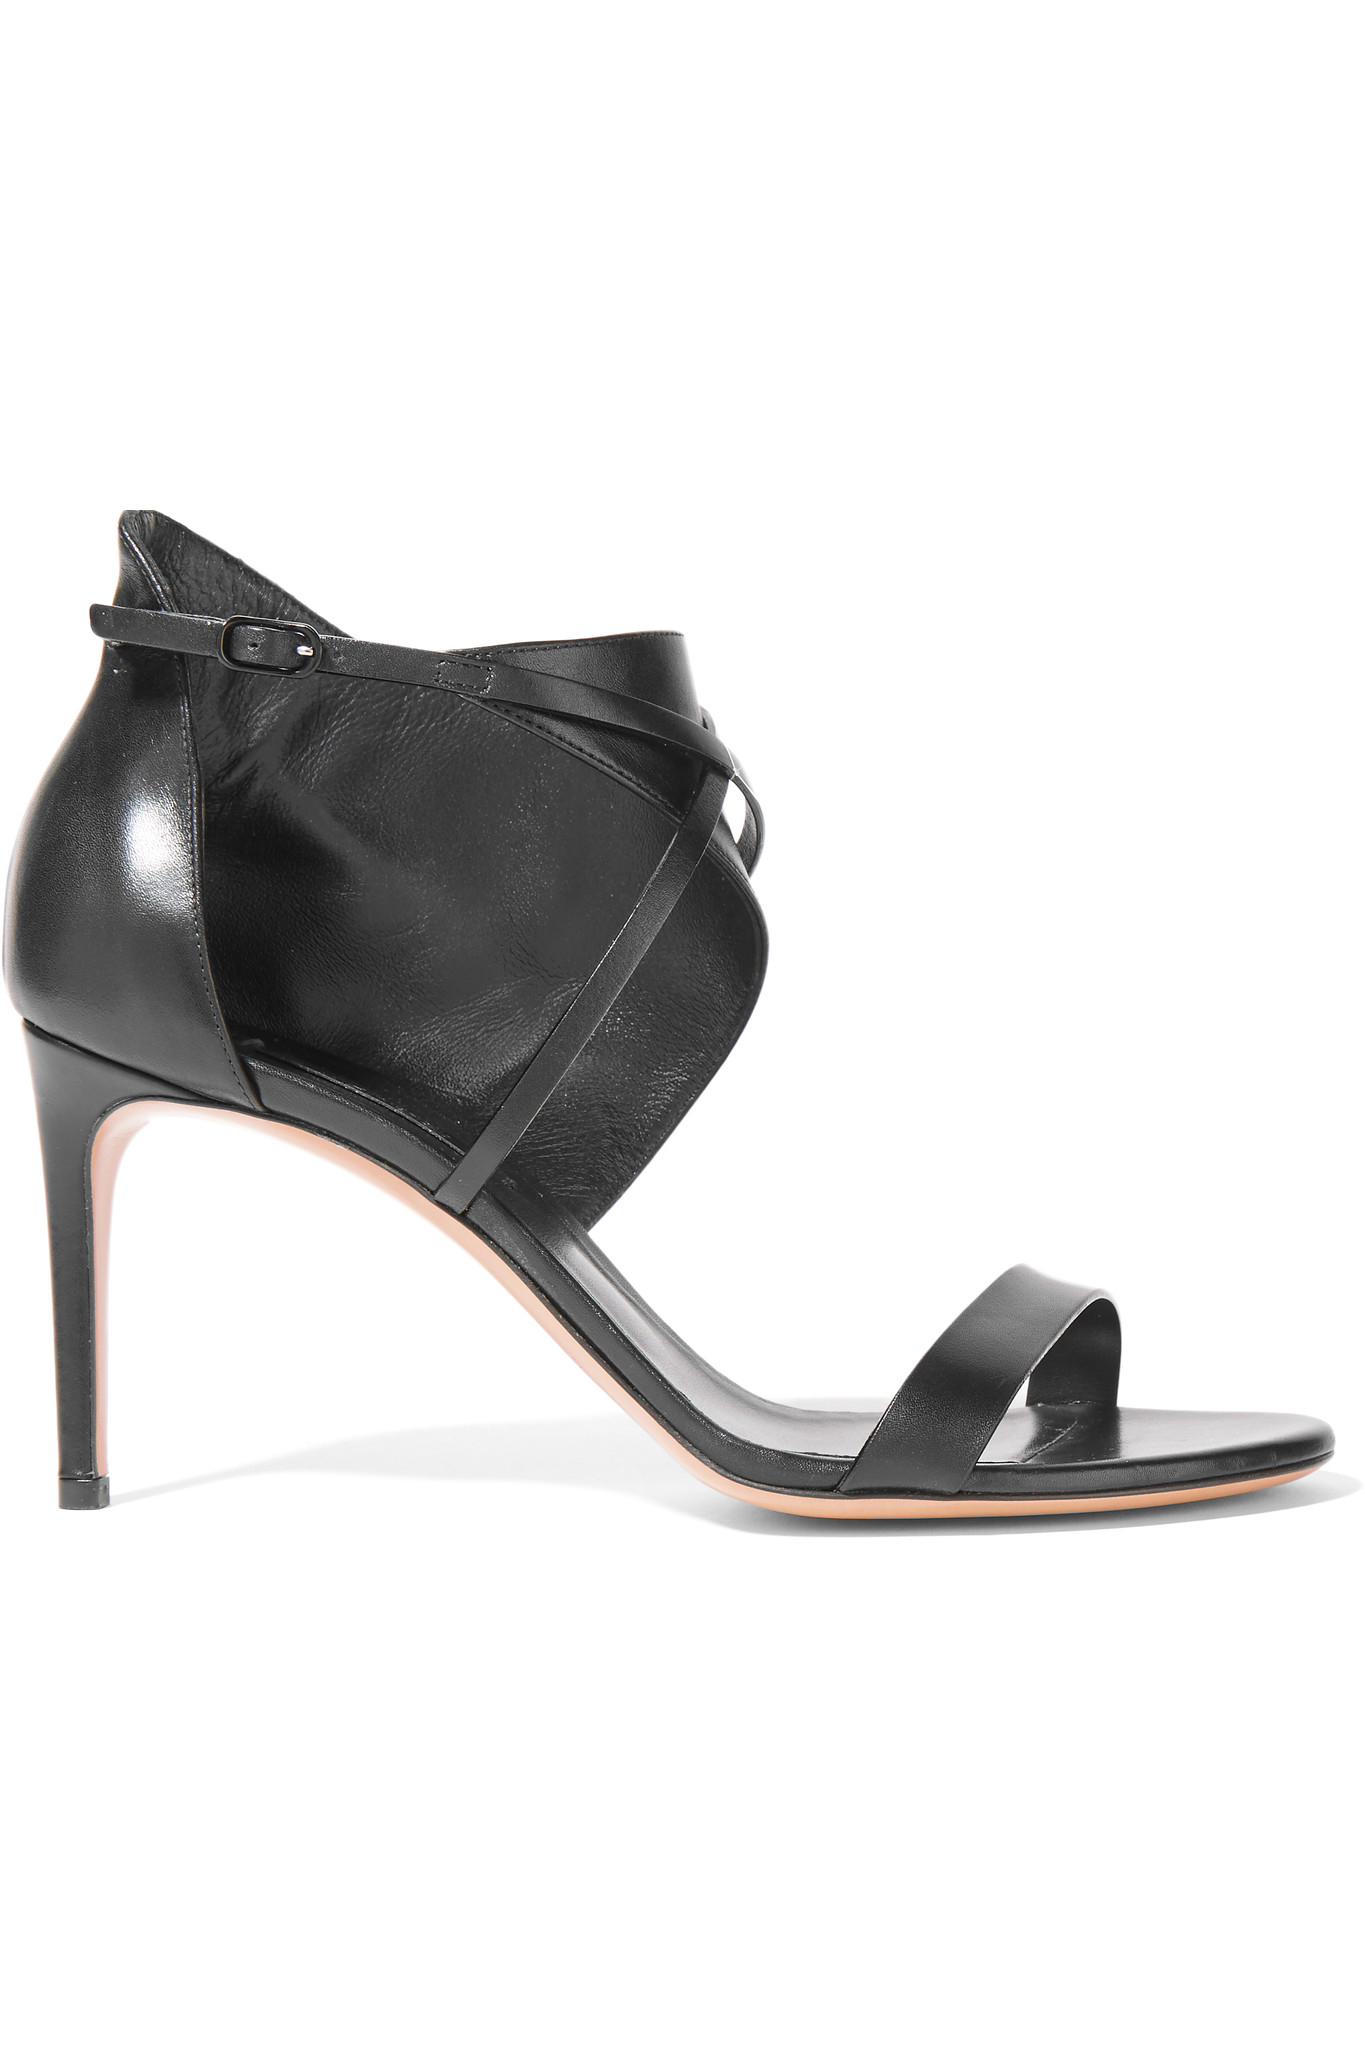 Casadei Leather Sandals in Black